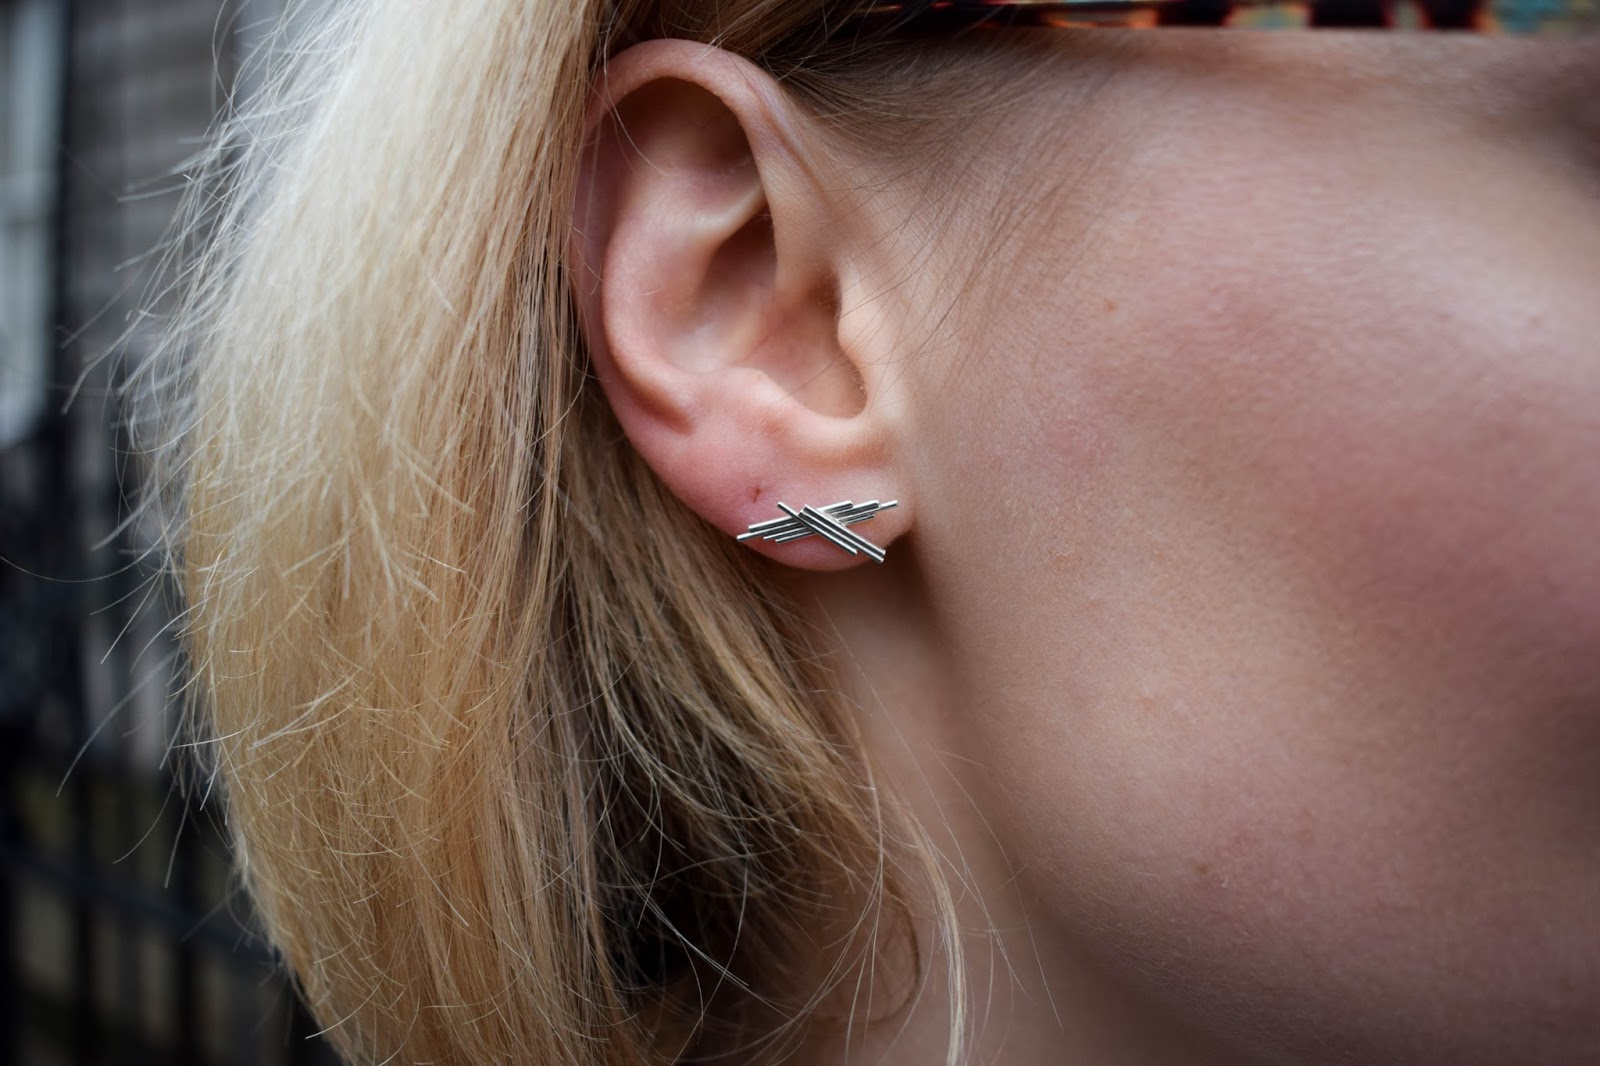 Elizabeth Humble jewellery design, award winning jewellery design, architecture inspired earrings in edinburgh,